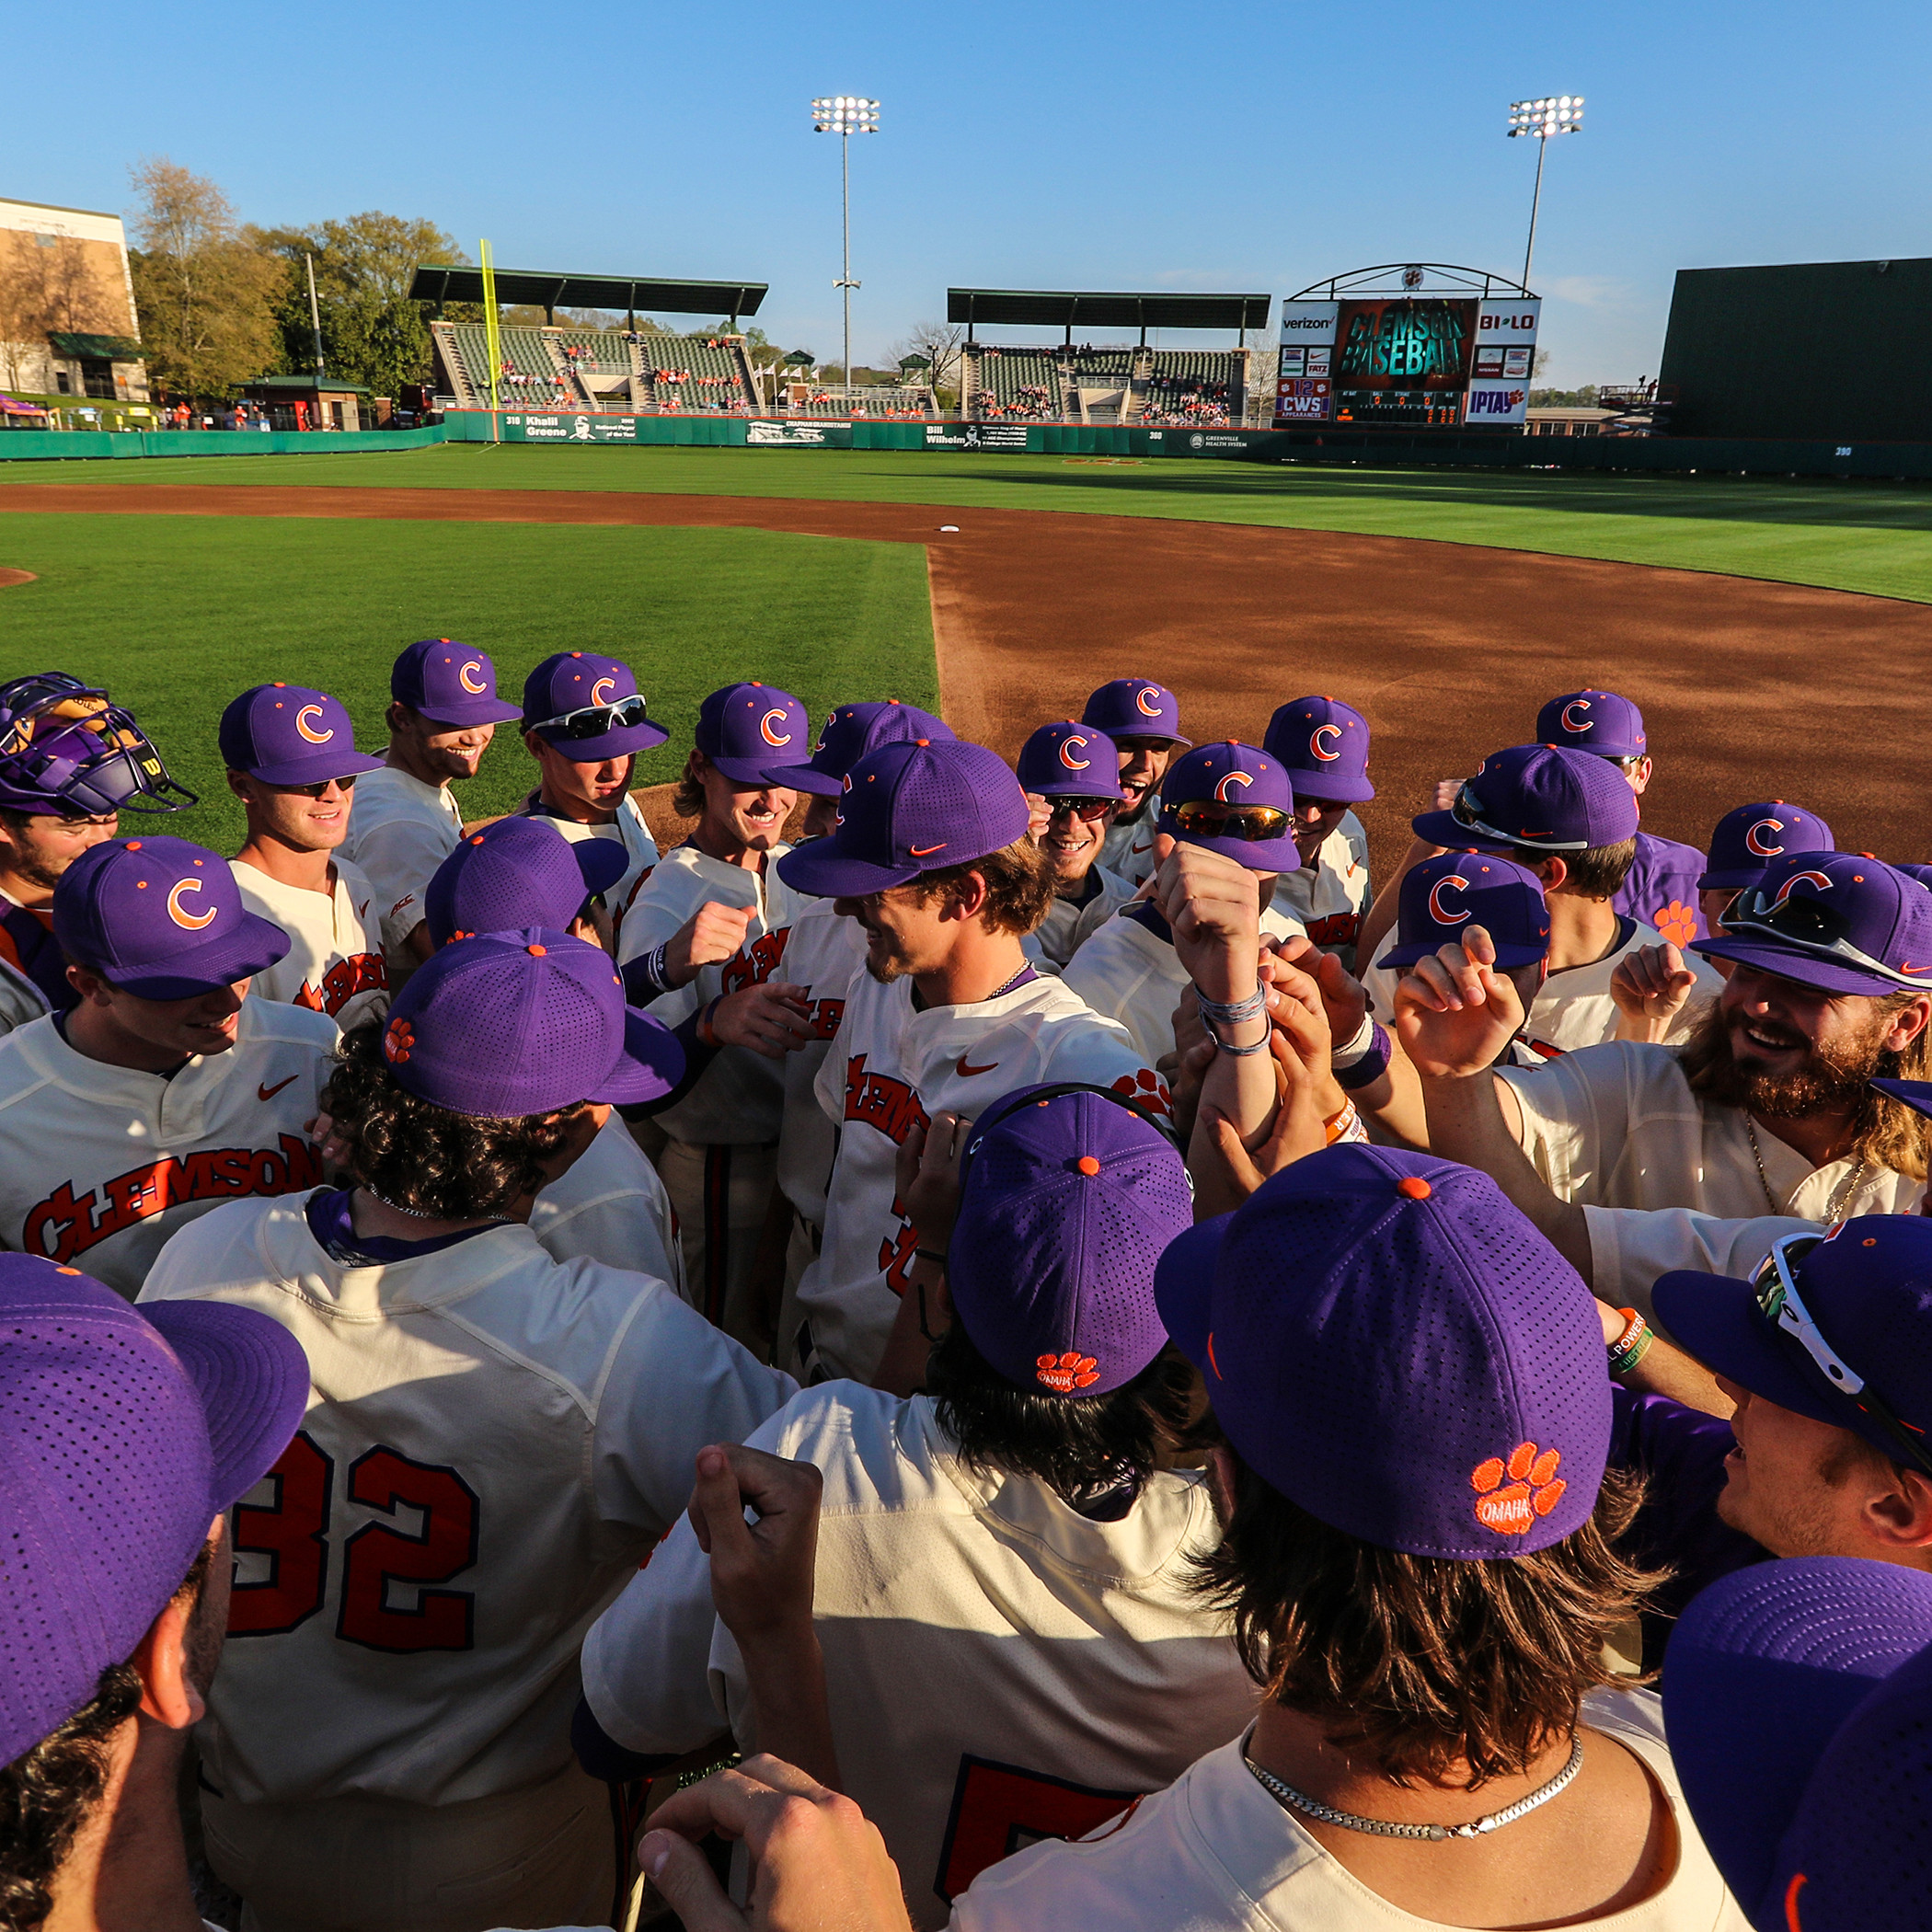 Tigers To Play CSU on Tuesday